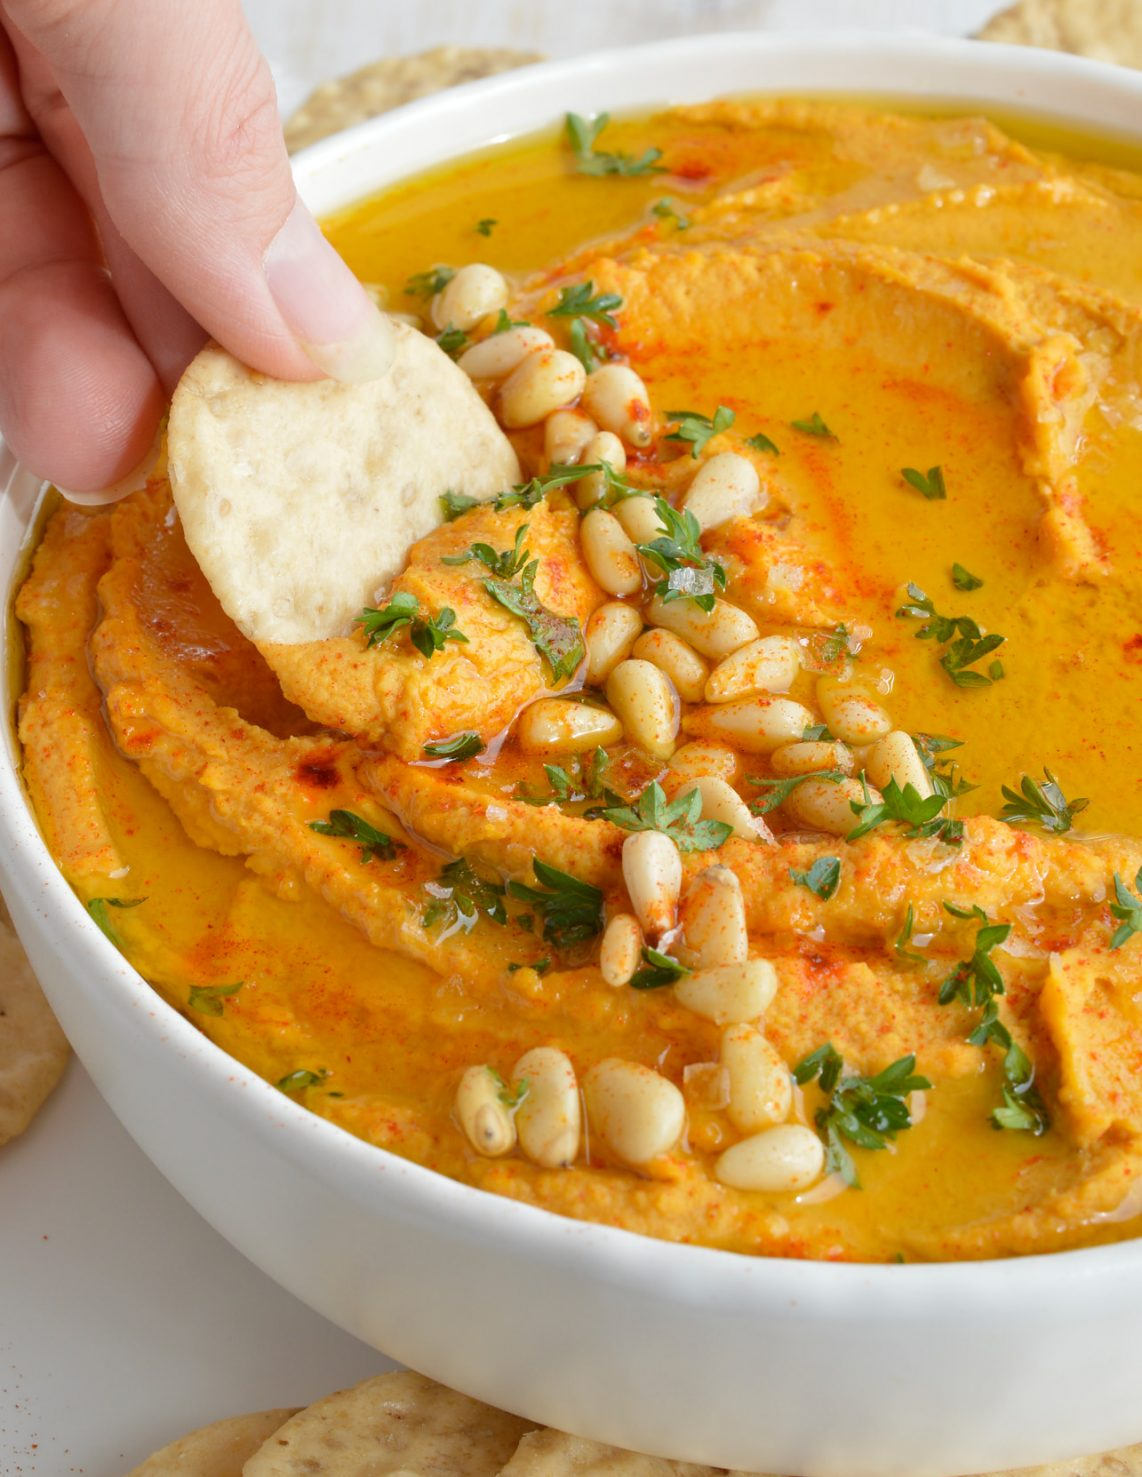 This Pumpkin Hummus Recipe needs to be on your holiday menu! This hummus is super creamy, full of flavor and great for feeding a hungry crowd! The perfect healthy dip recipe for Thanksgiving.